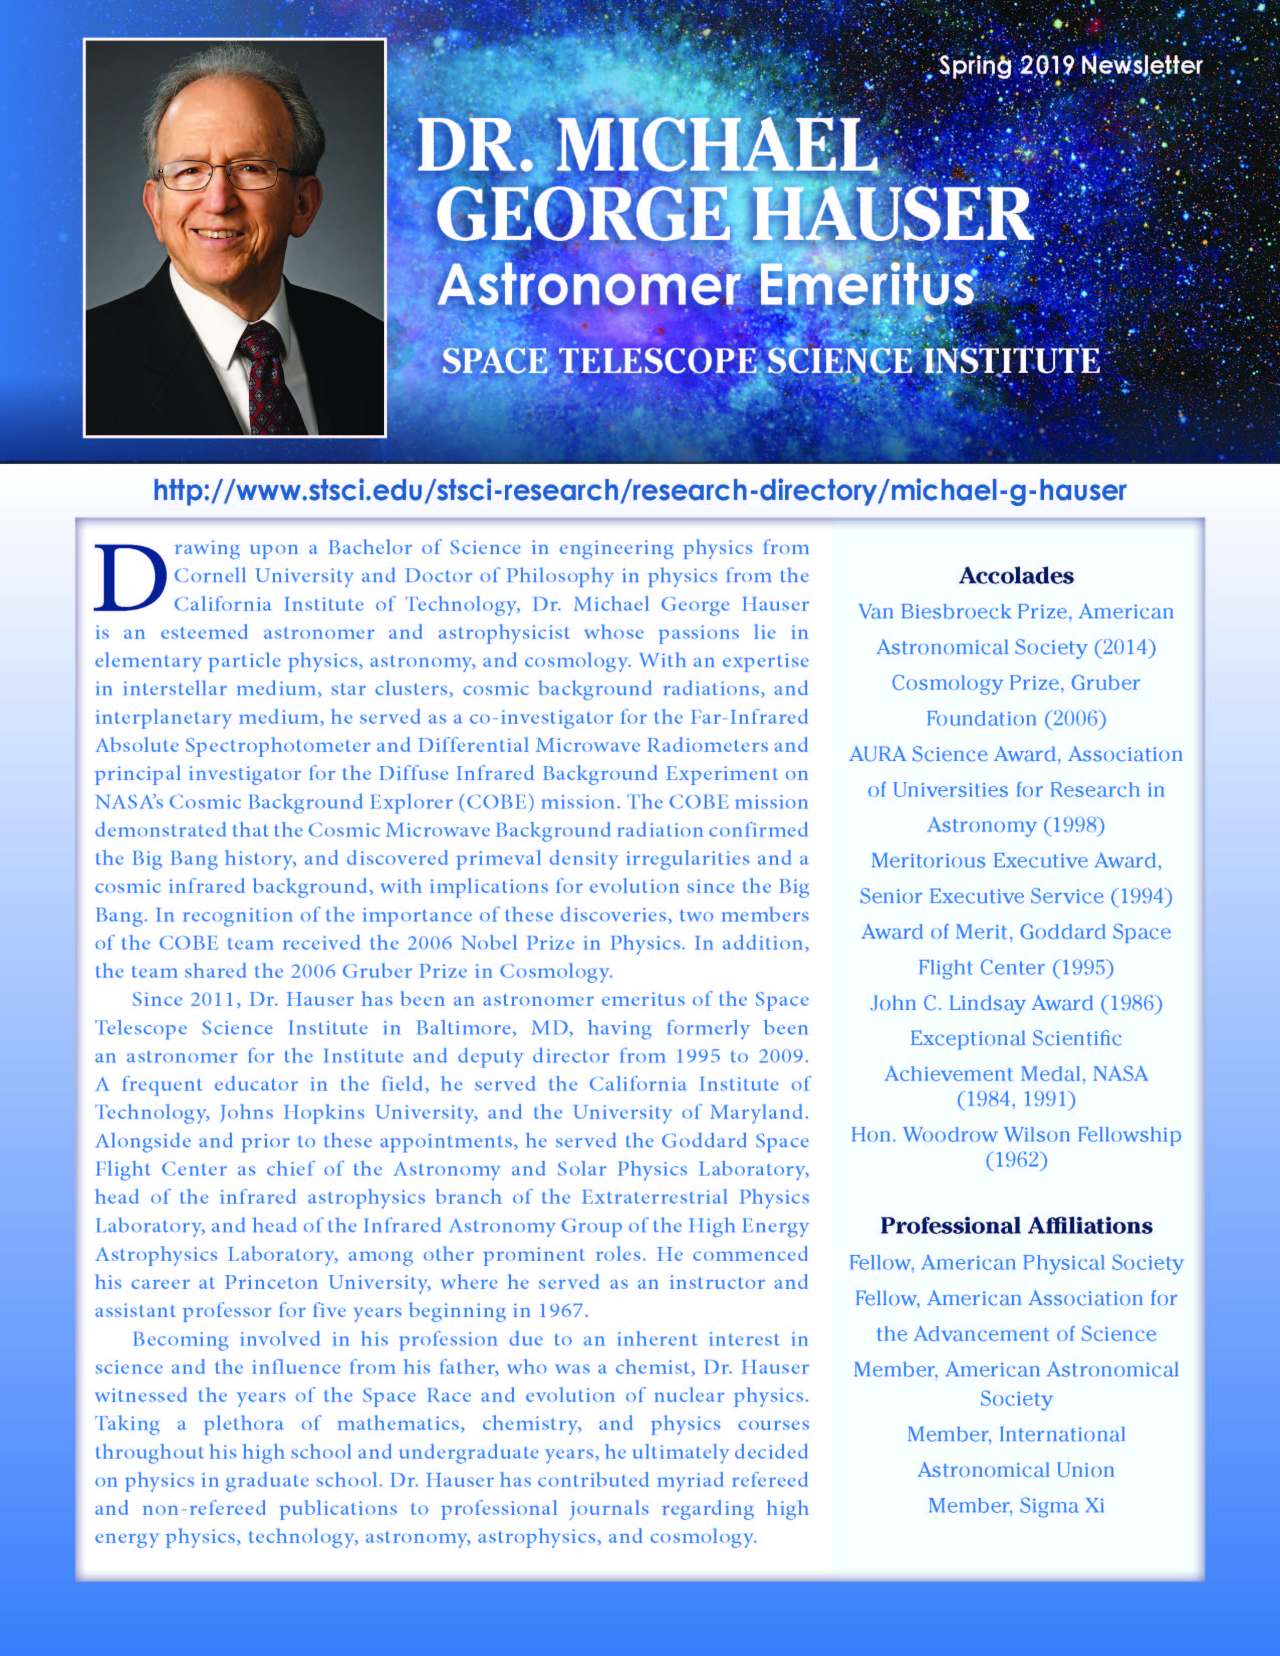 Hauser, Michael 4258195_2405199 Newsletter REVISED.jpg